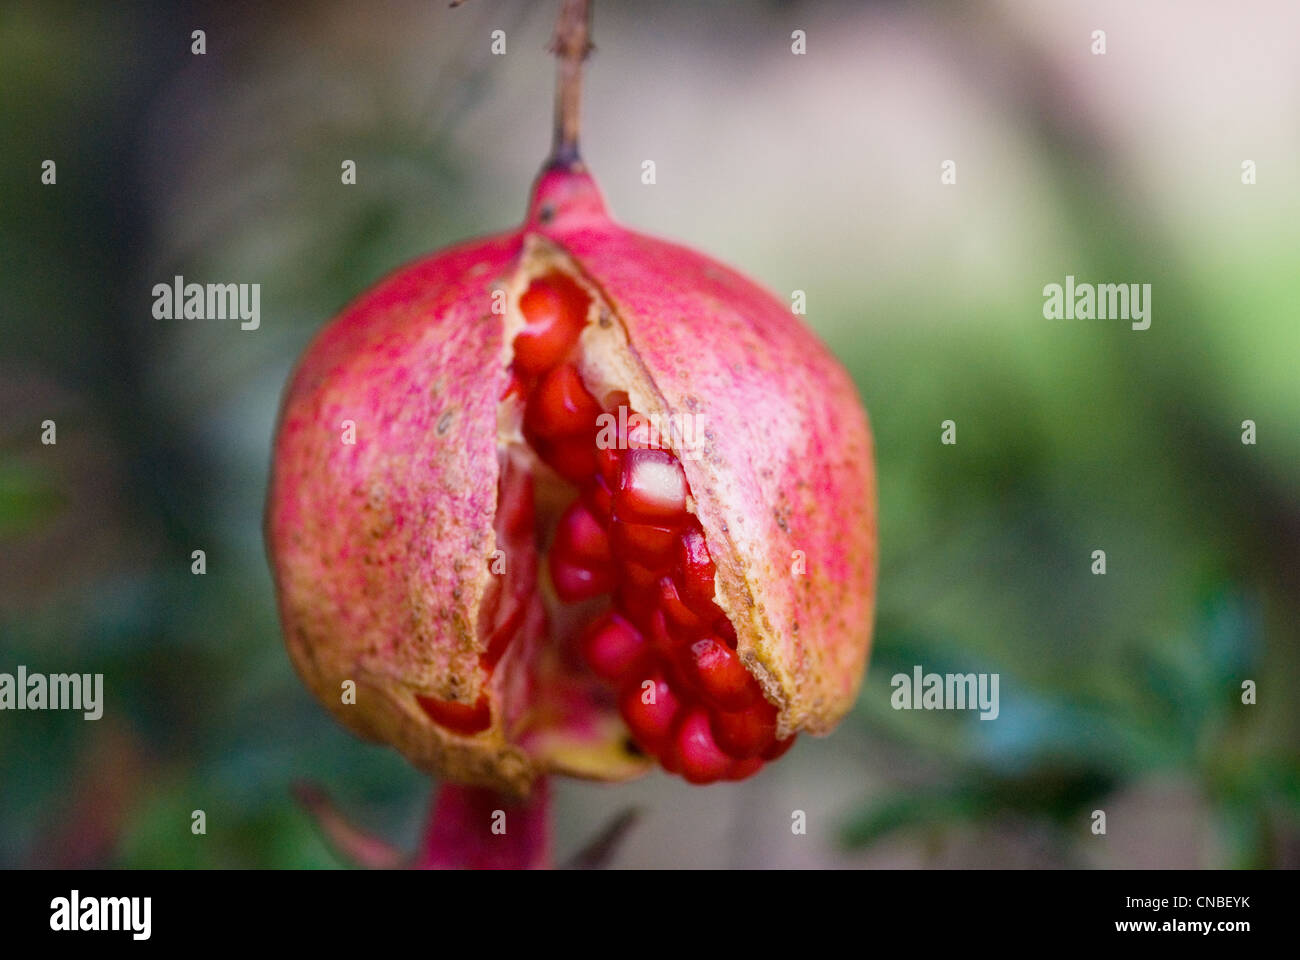 Pomegranate fruit on tree split open showing the ripe seeds in macro photography. - Stock Image